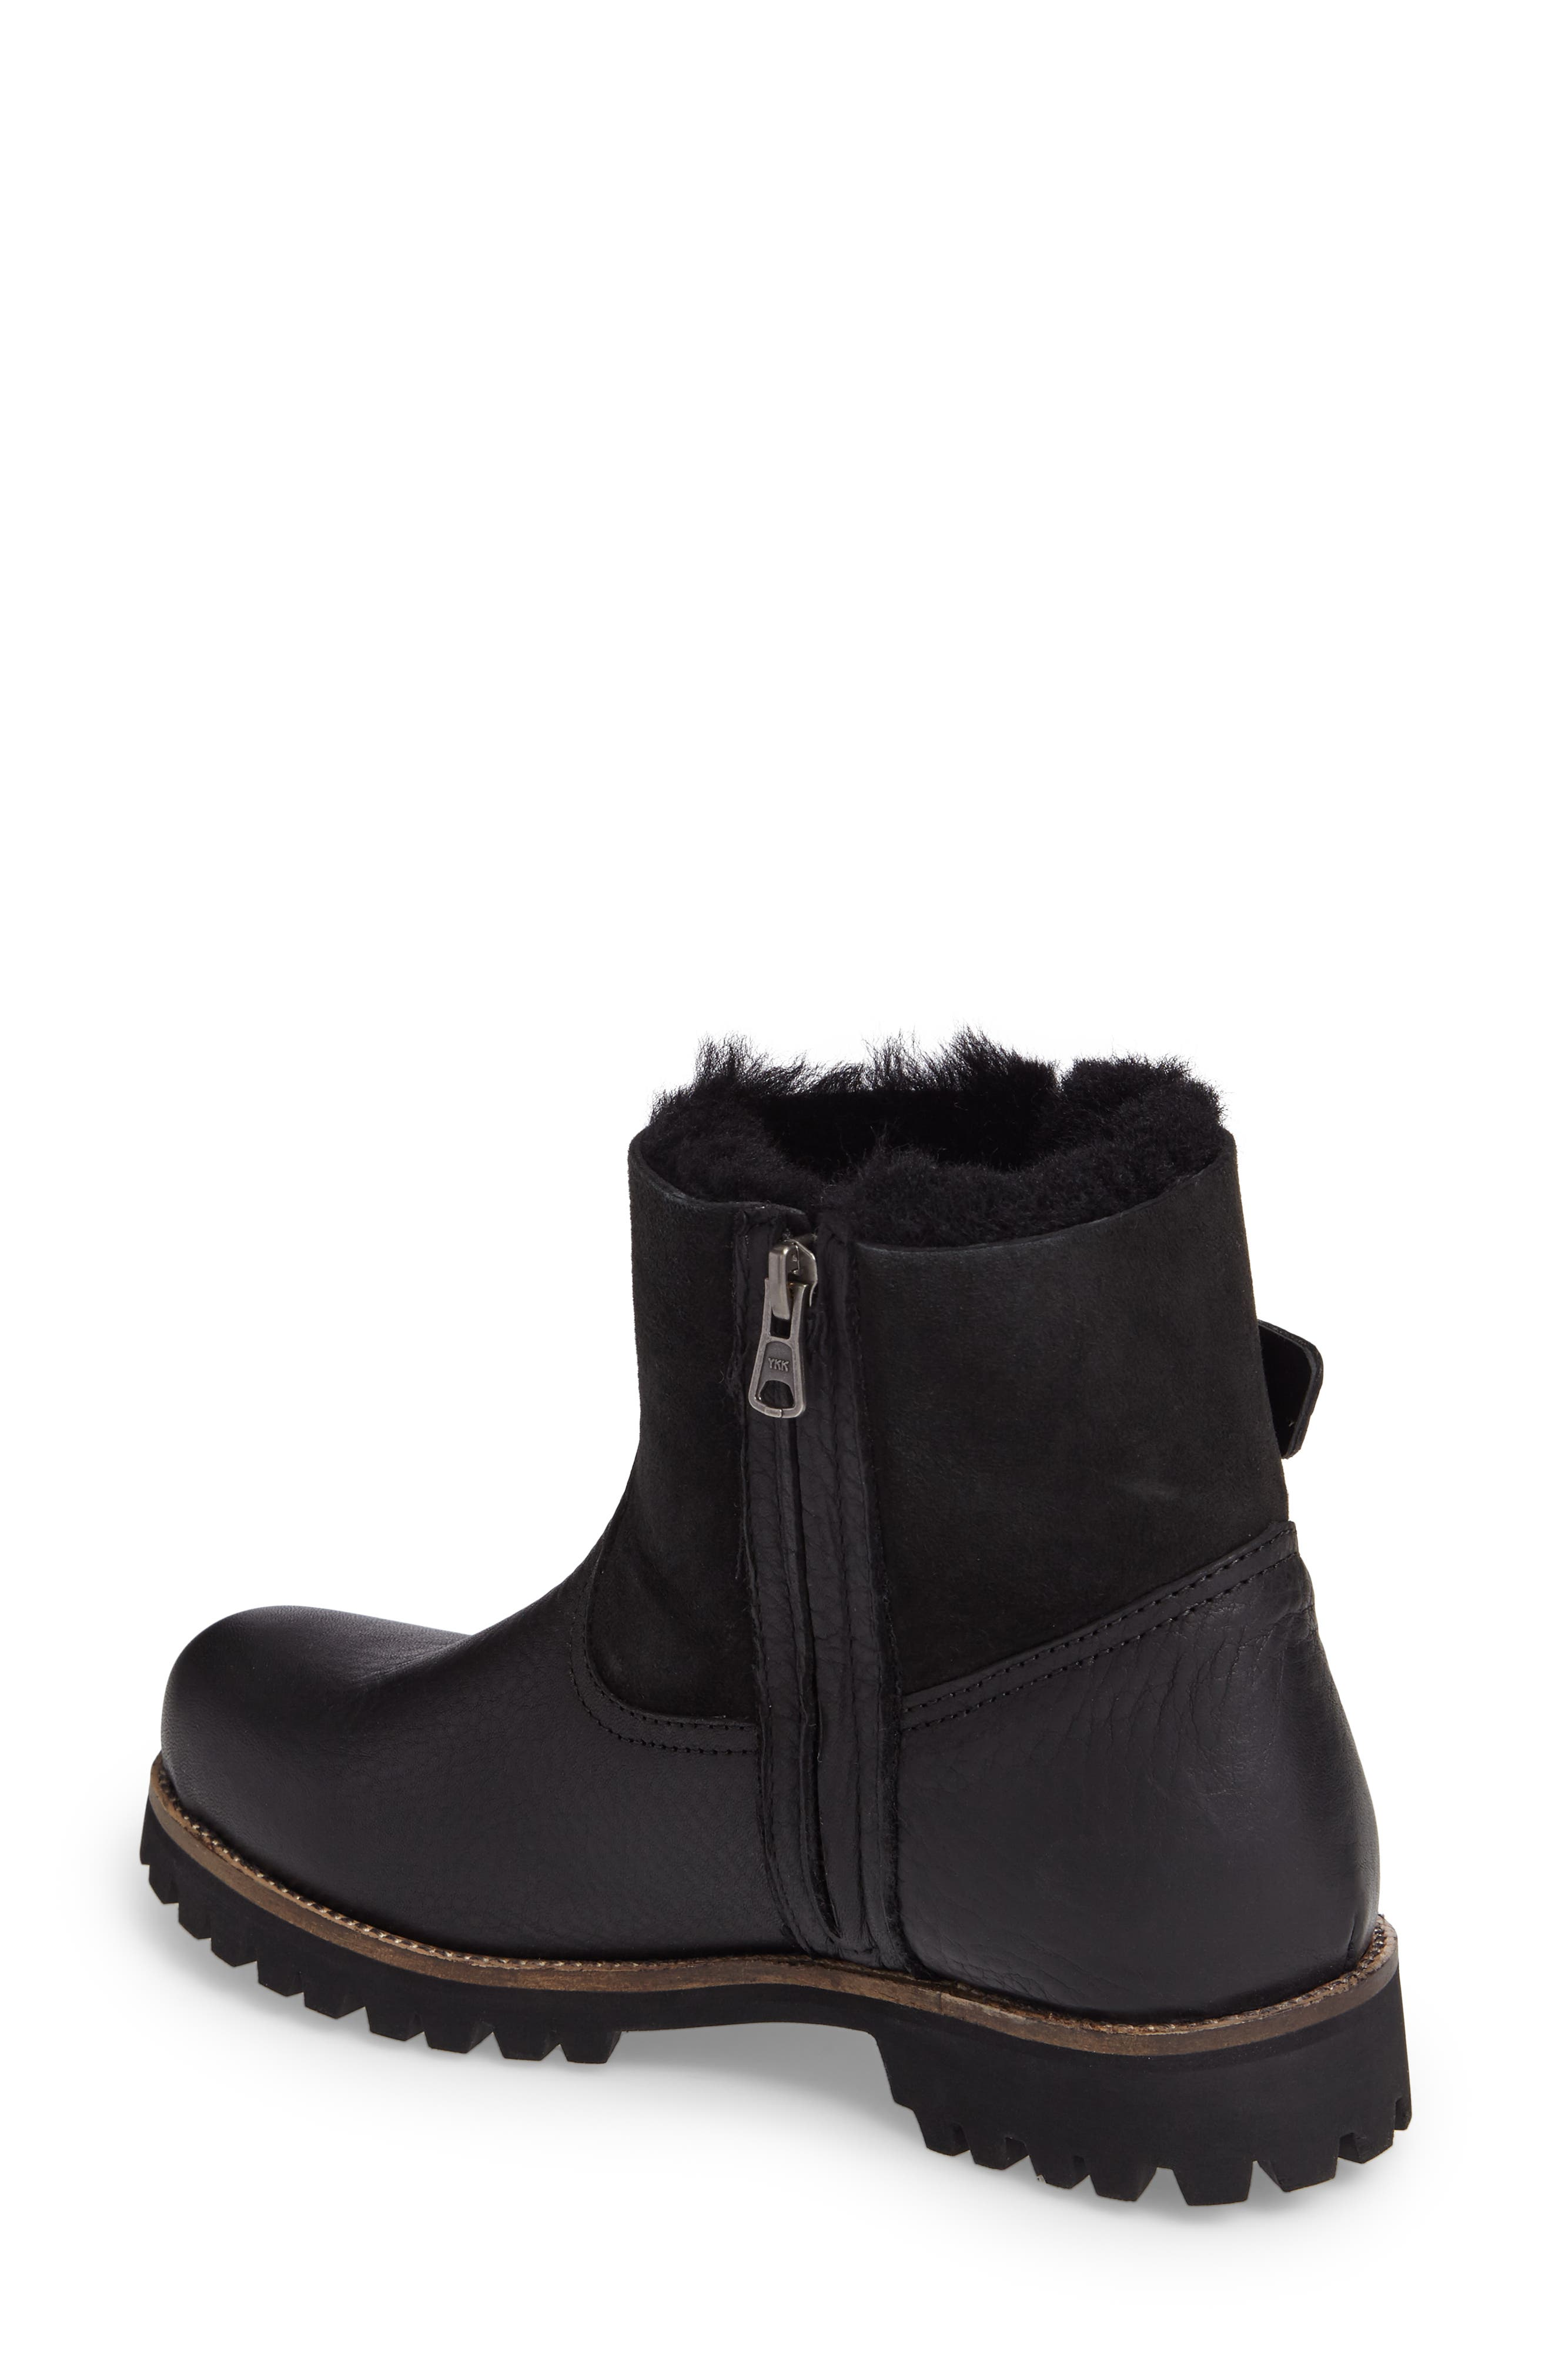 OL06 Genuine Shearling Lined Bootie,                             Alternate thumbnail 2, color,                             BLACK LEATHER